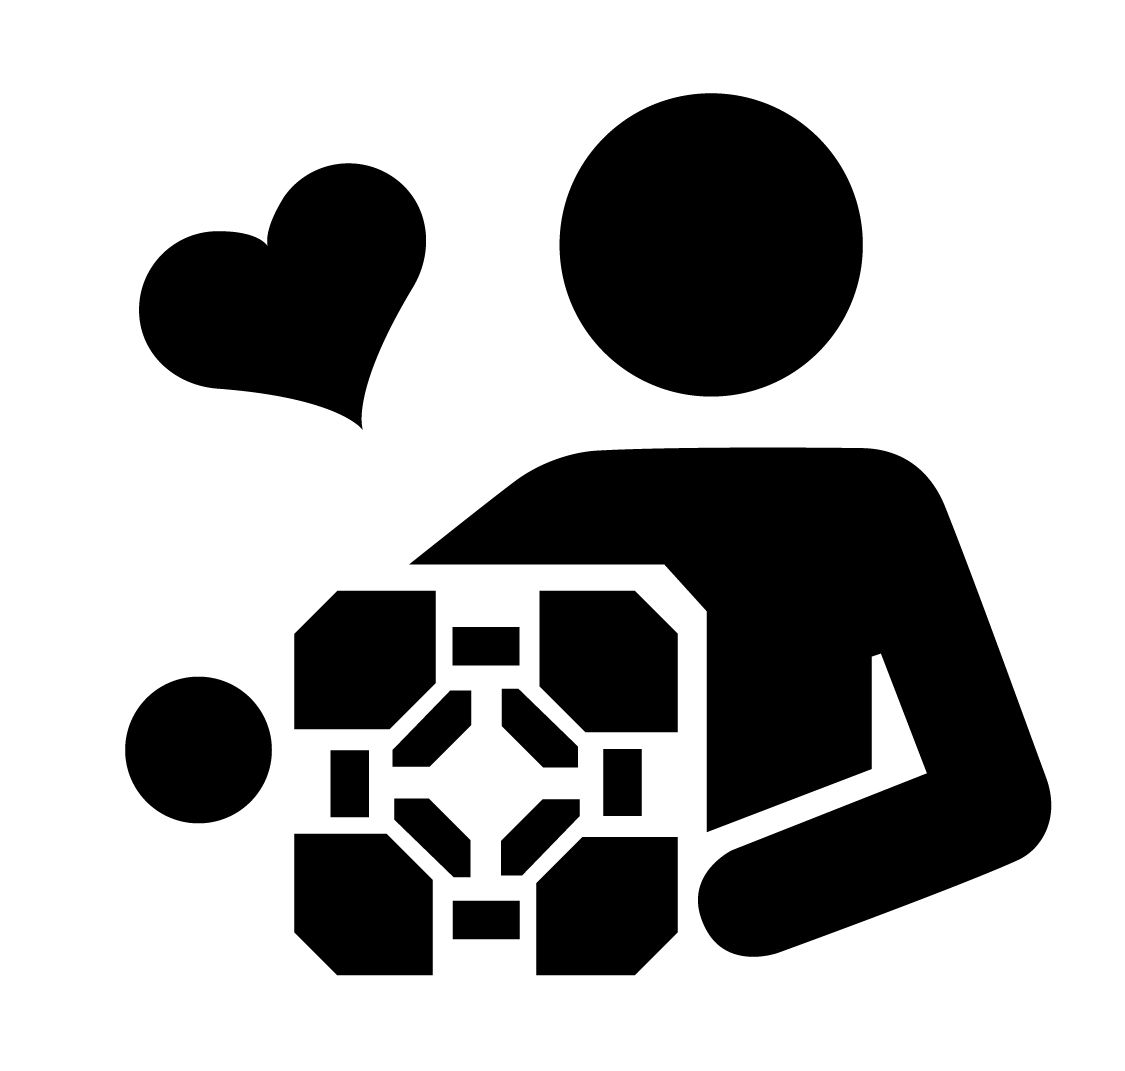 I love you, weighted companion cube stencil template | Stencil ...